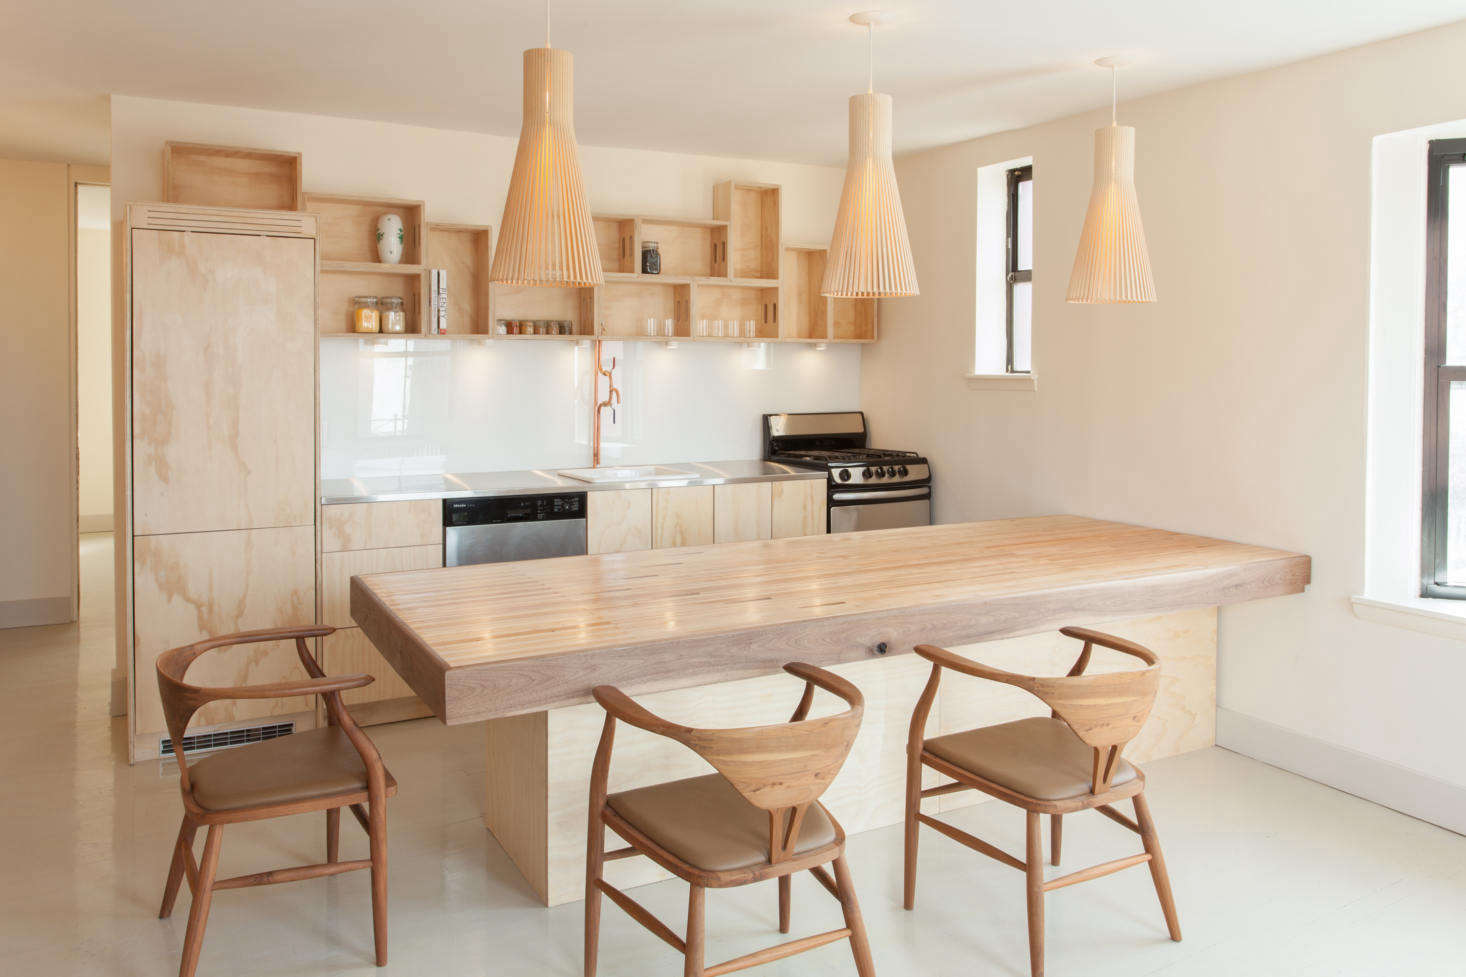 The architects began by opening up the space to the living room—the kitchen/dining half is now approximately 0 square feet and includes a peninsula that works as both a food-prep counter and table.